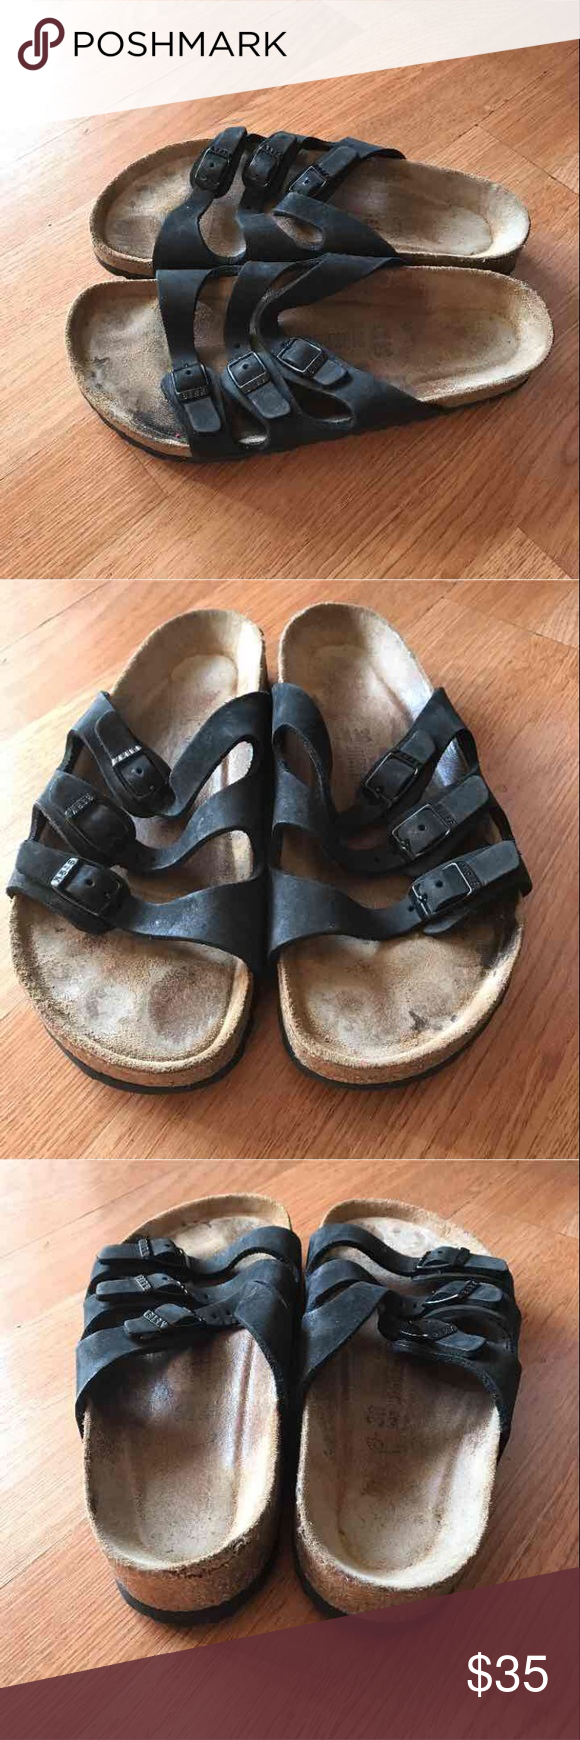 Birkenstock sandals wo's size 7 Used but in good condition Birkenstock Shoes Sandals